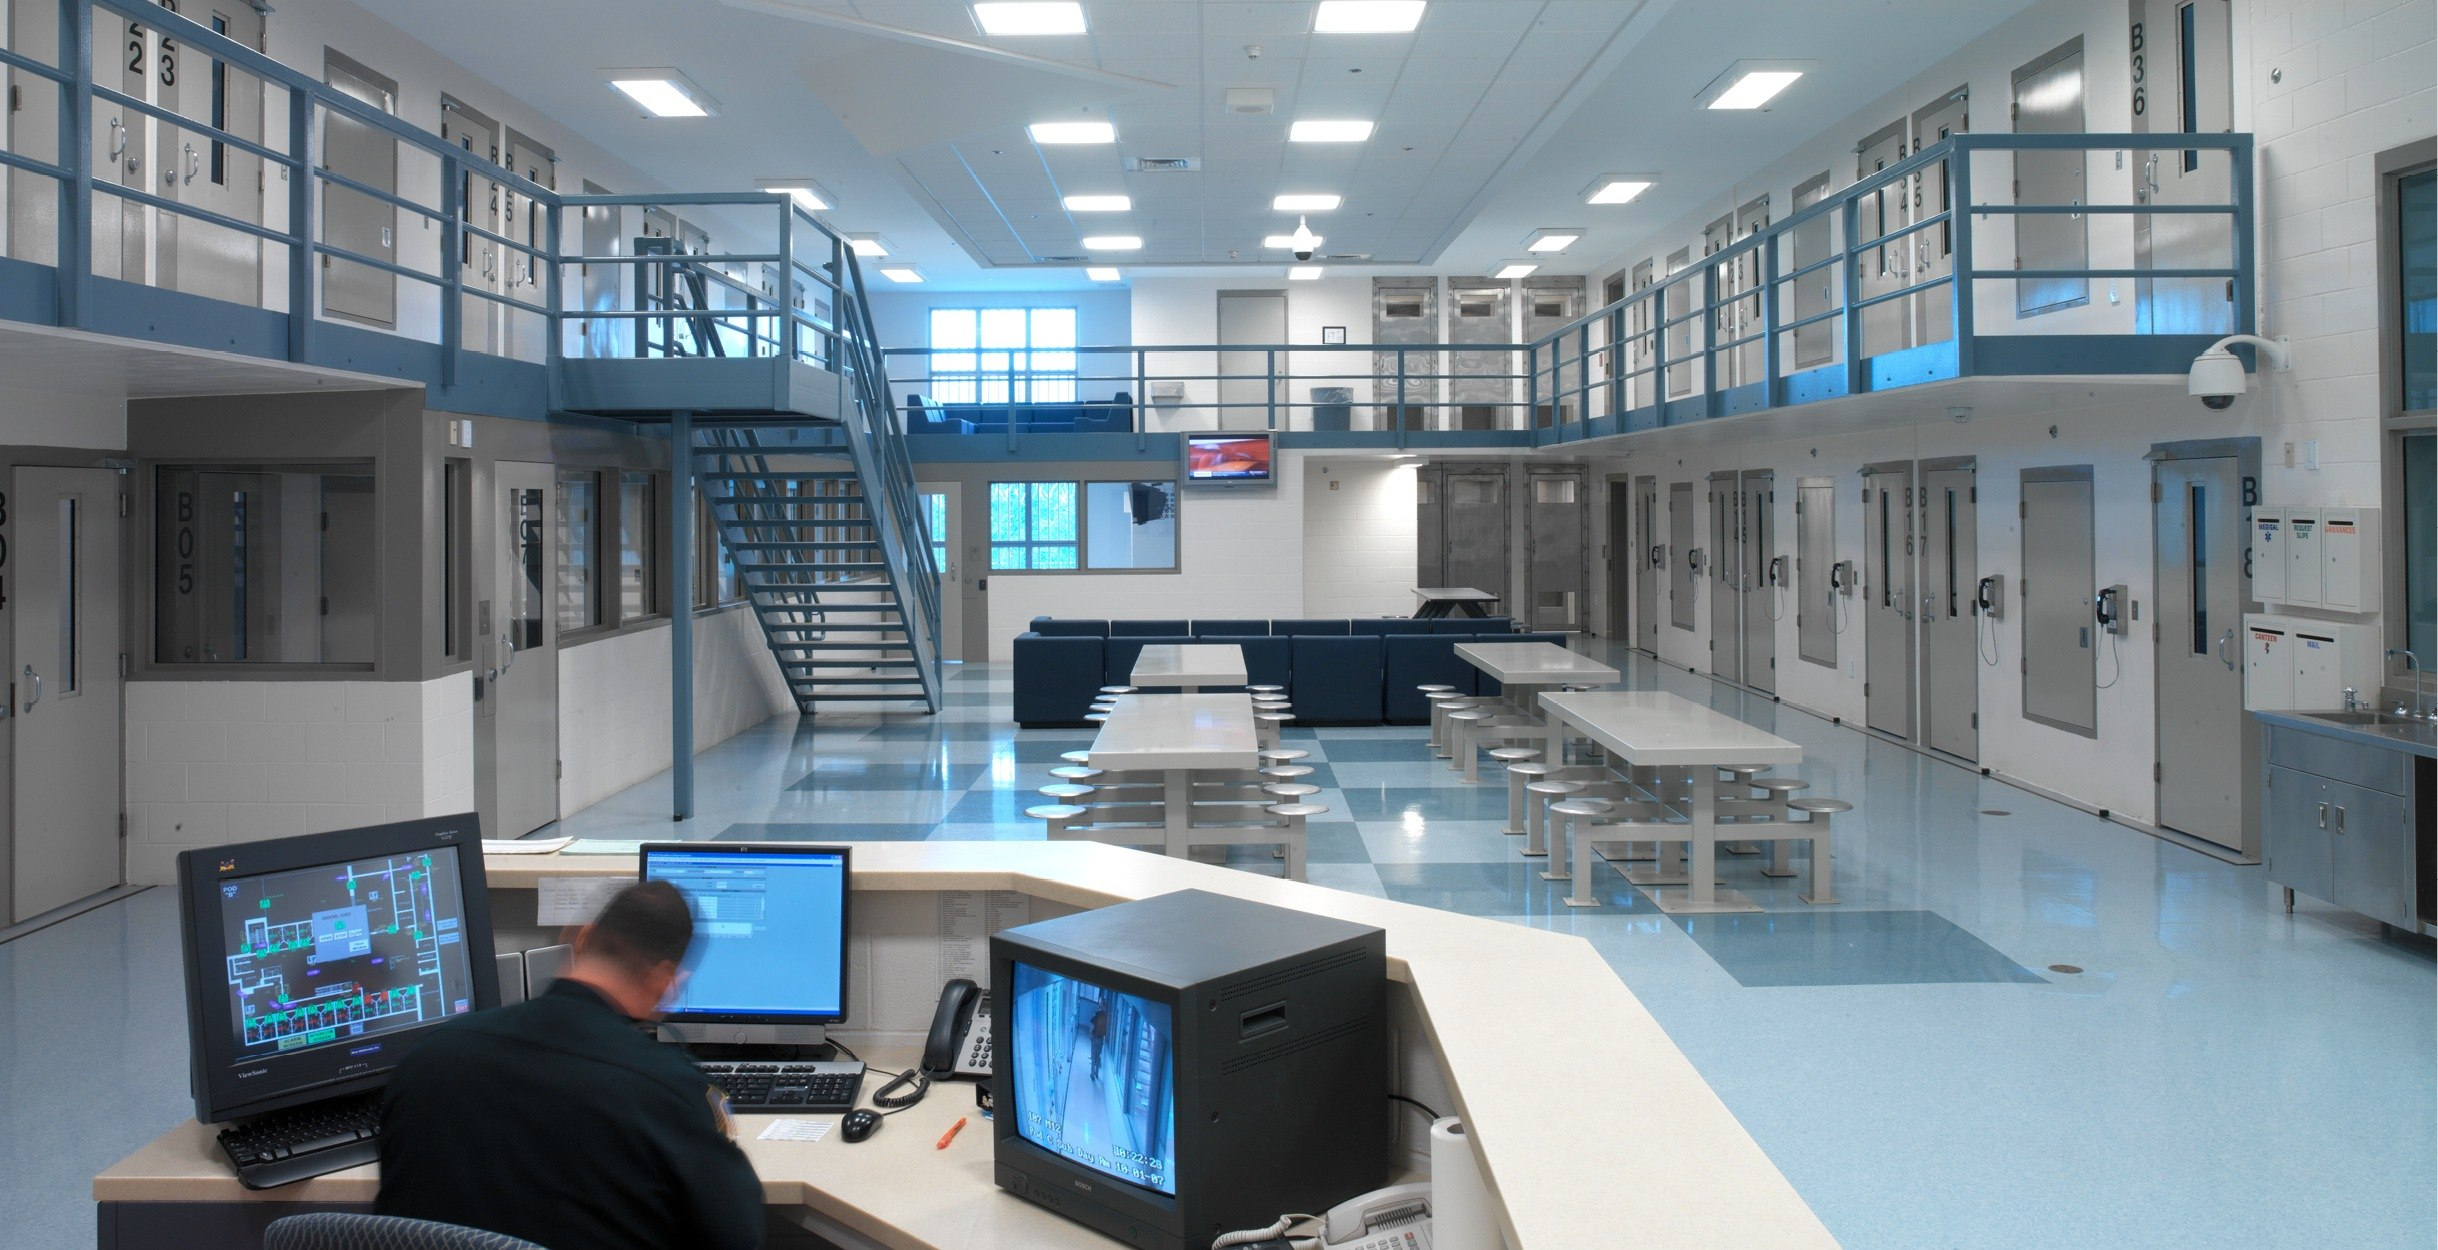 Franklin Jail And House Of Corrections Stv